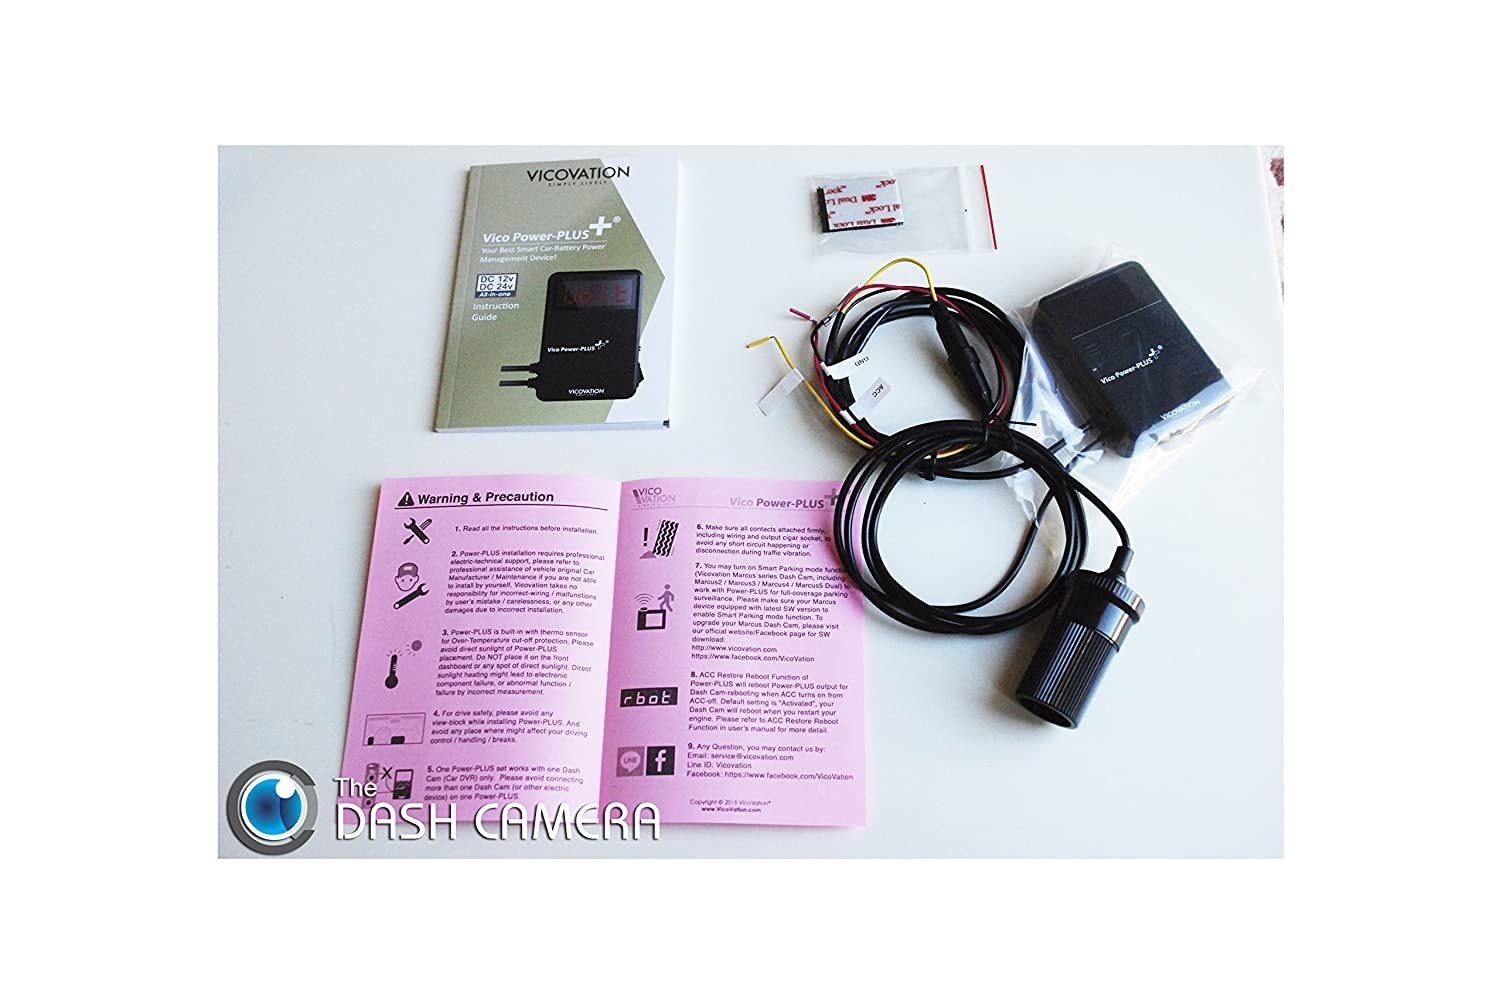 Vicovation Vico Power Plus By Electronics If You Have Questions About This Circuit Please Direct Them To Jan